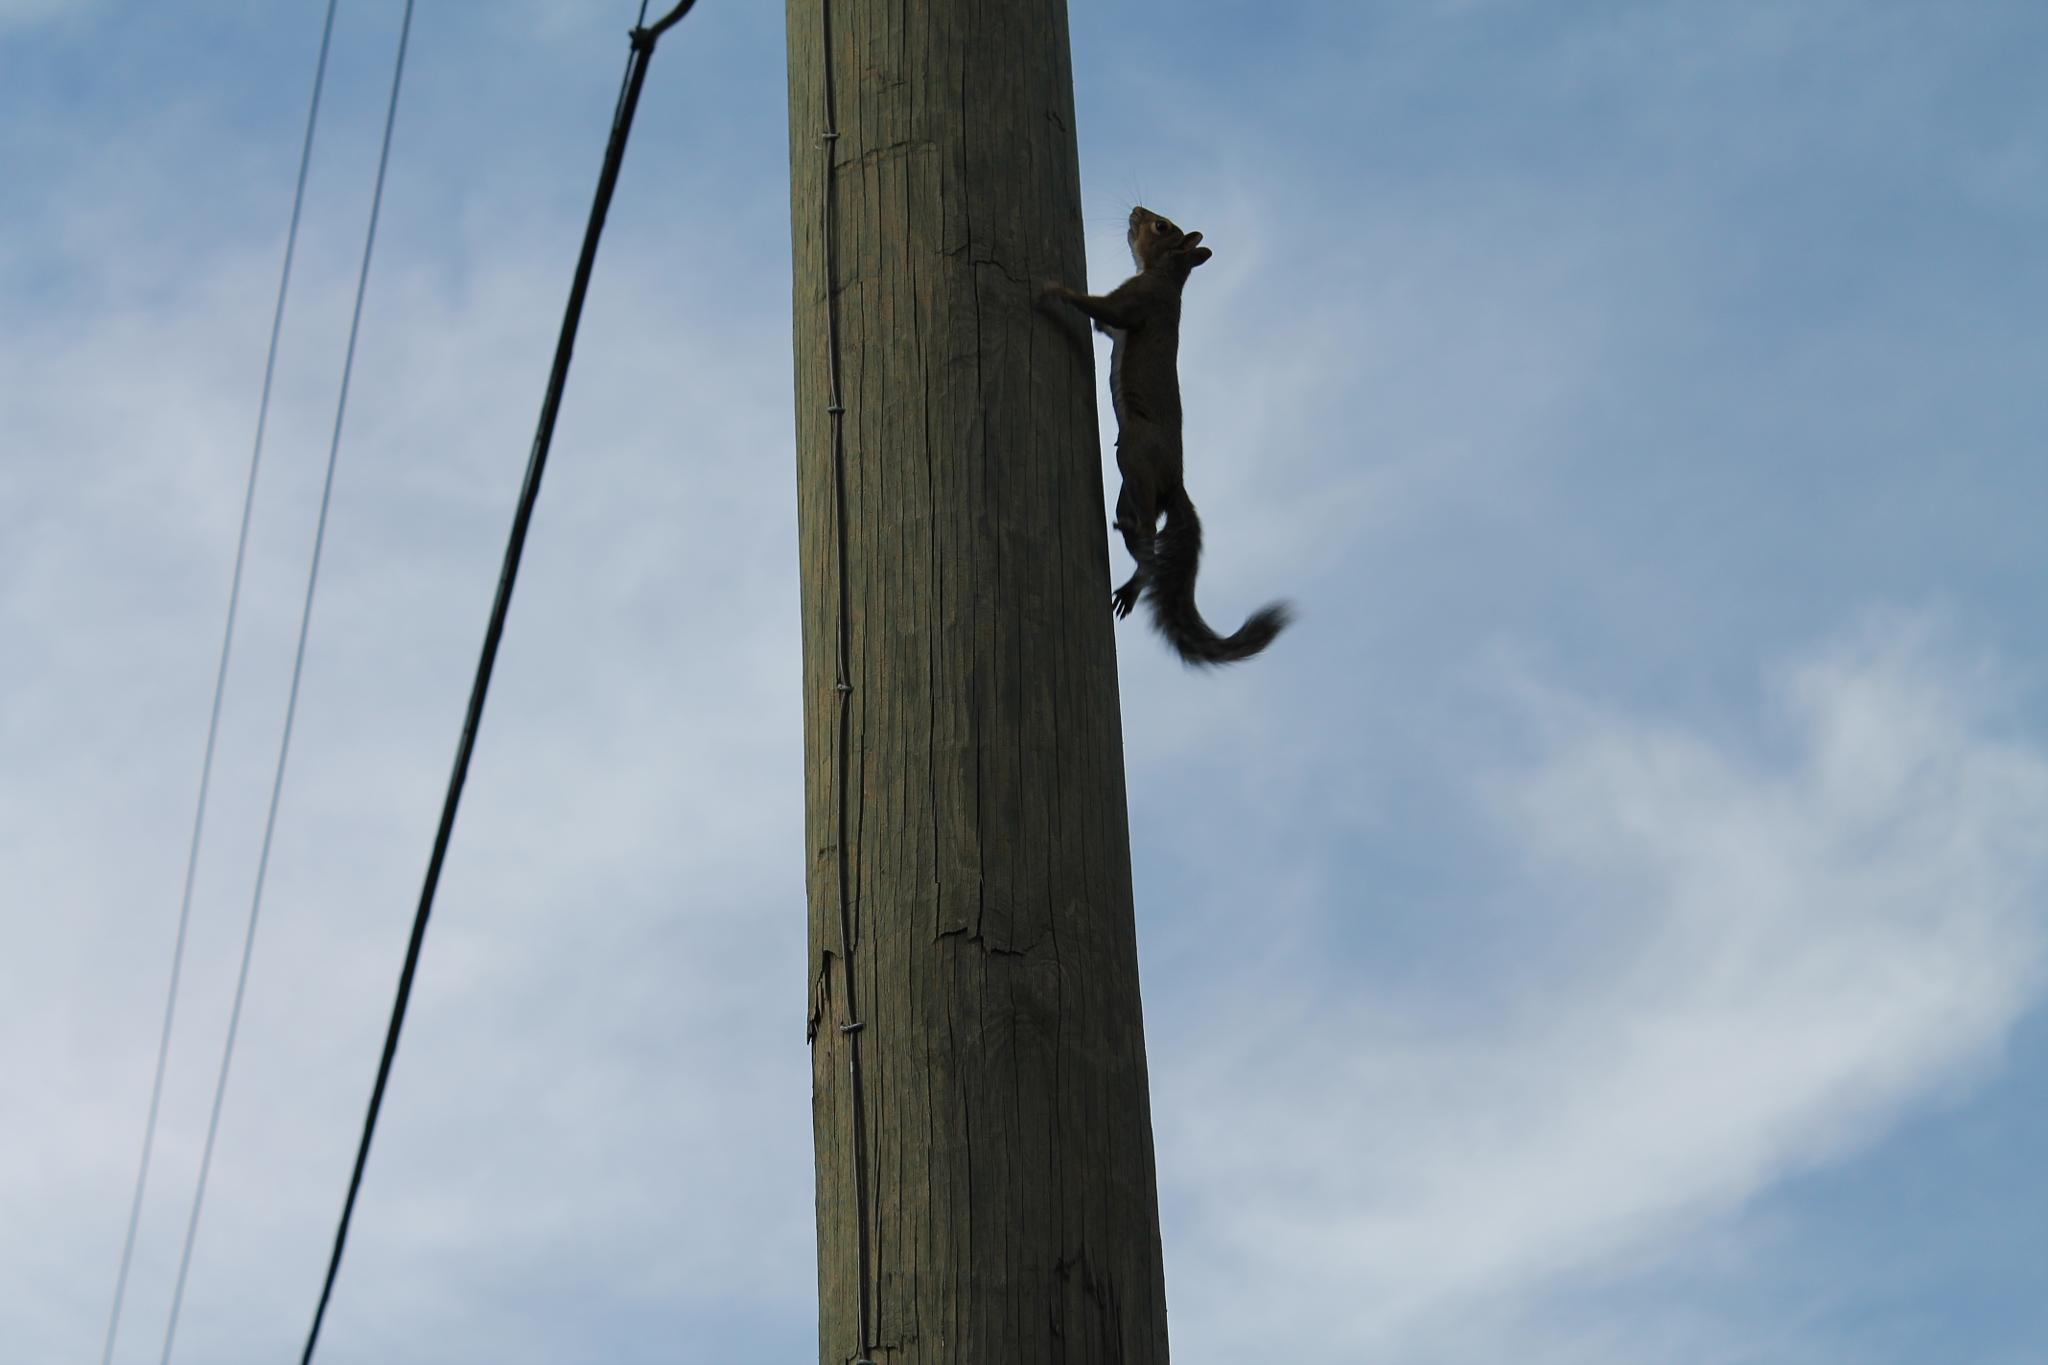 going up the pole by Kathy